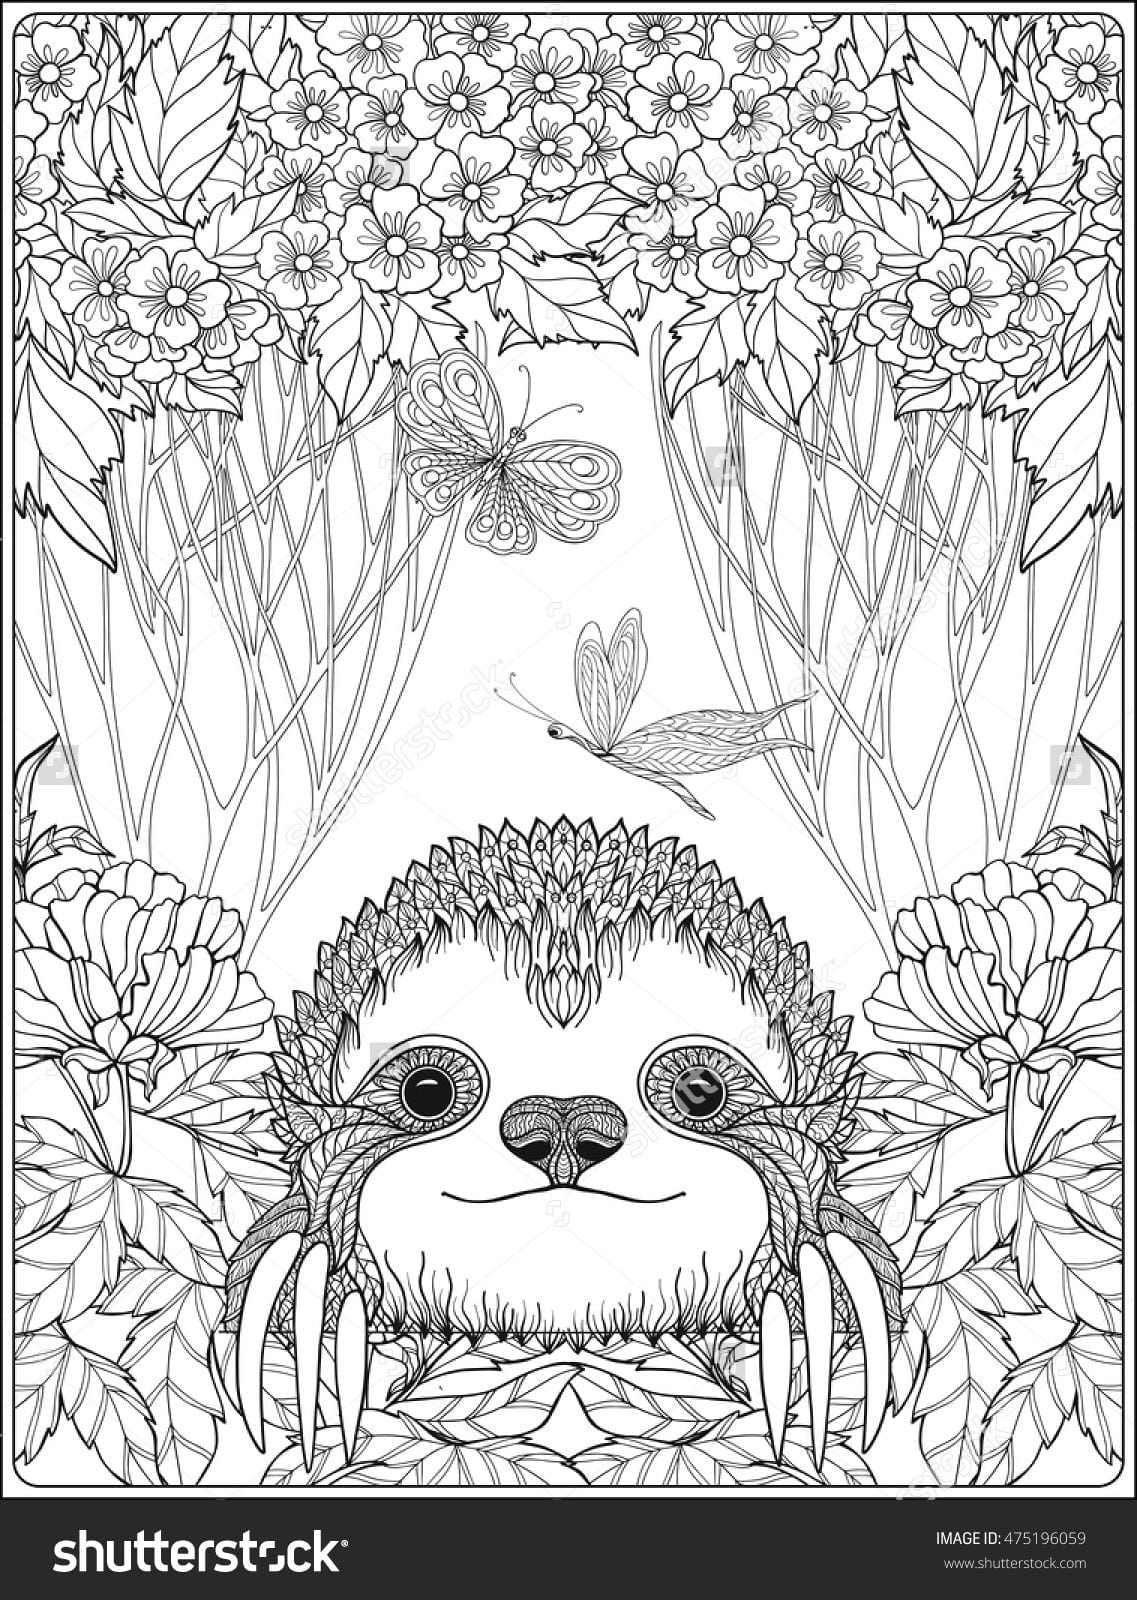 Sloth Coloring Page – NEO Coloring